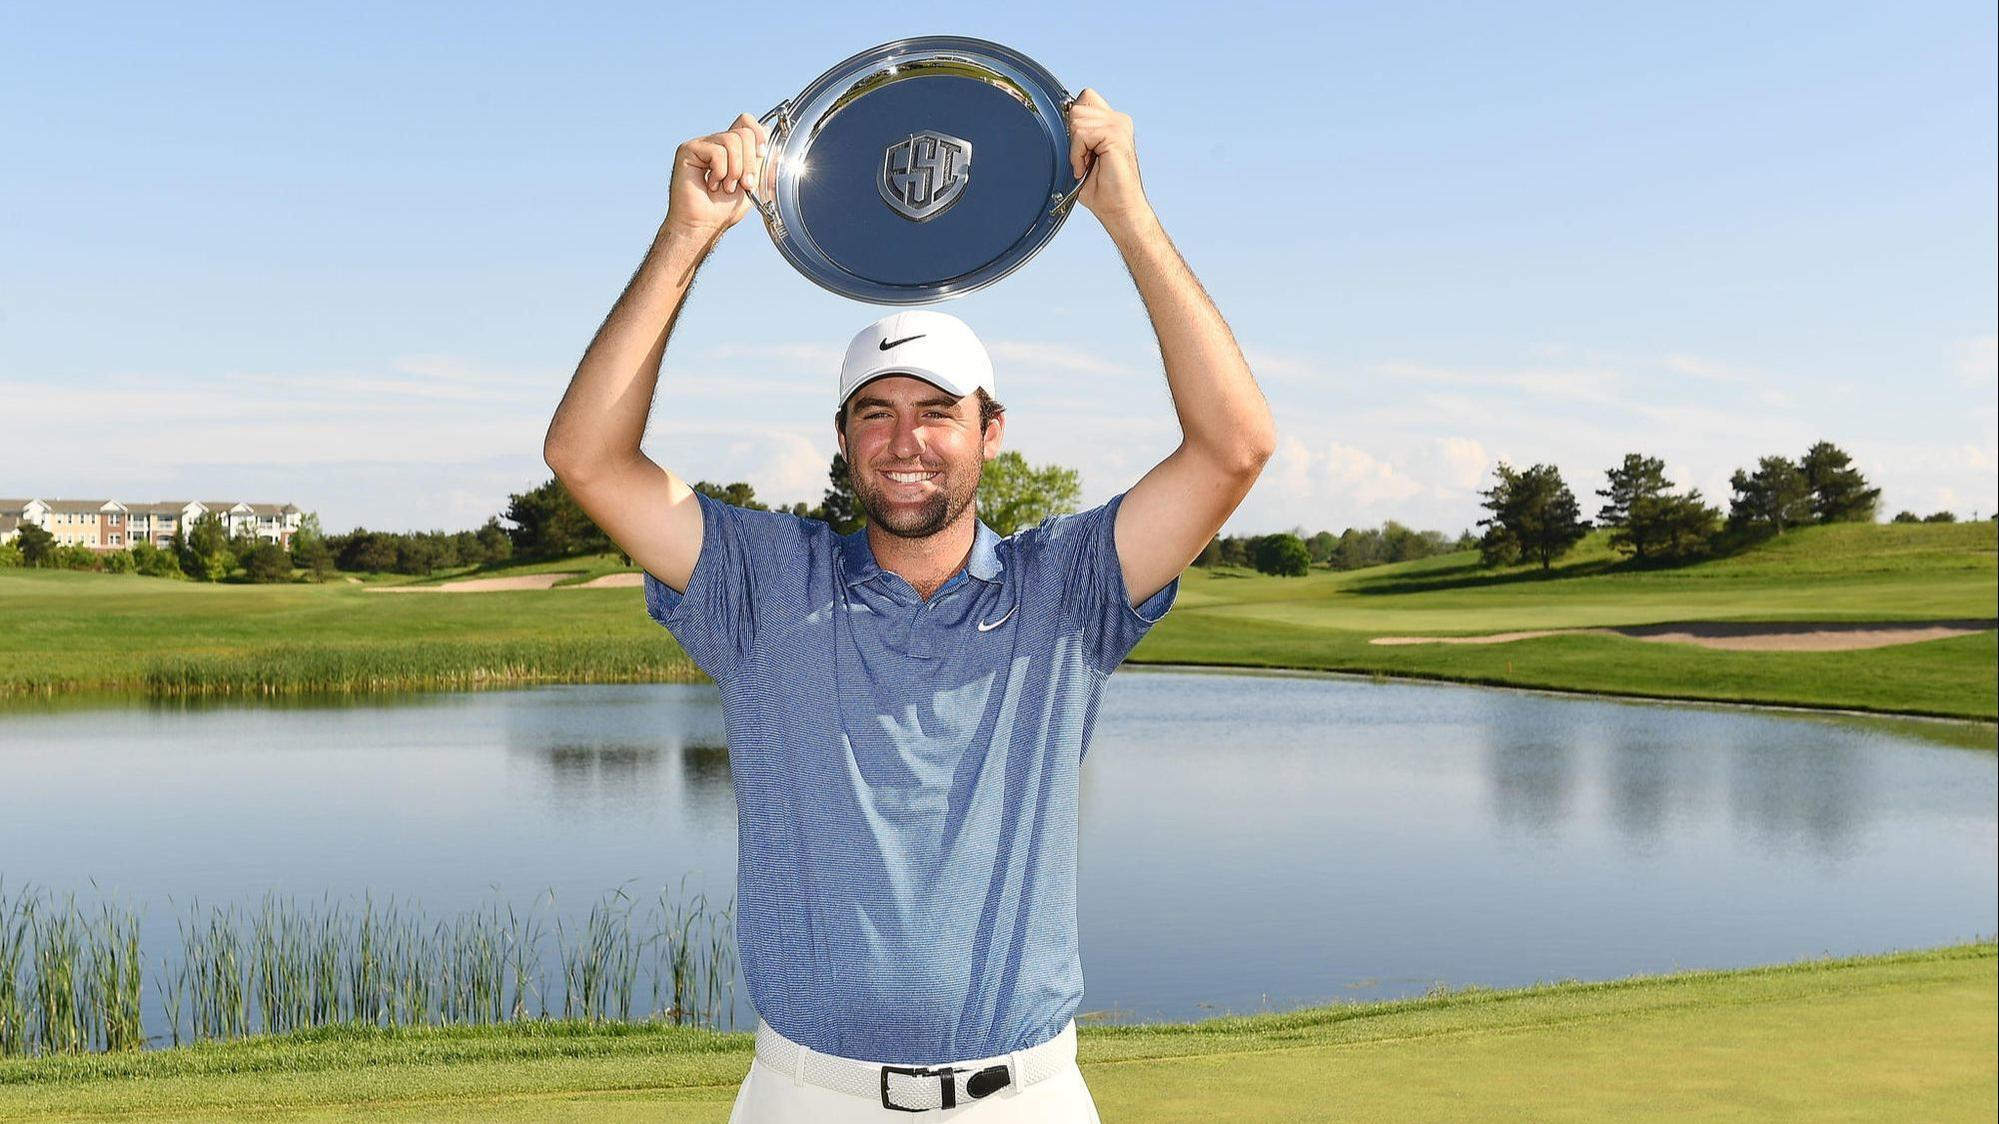 Rising star Scottie Scheffler wins the Evans Scholars Invitational at the Glen Club in a playoff after a closing 63